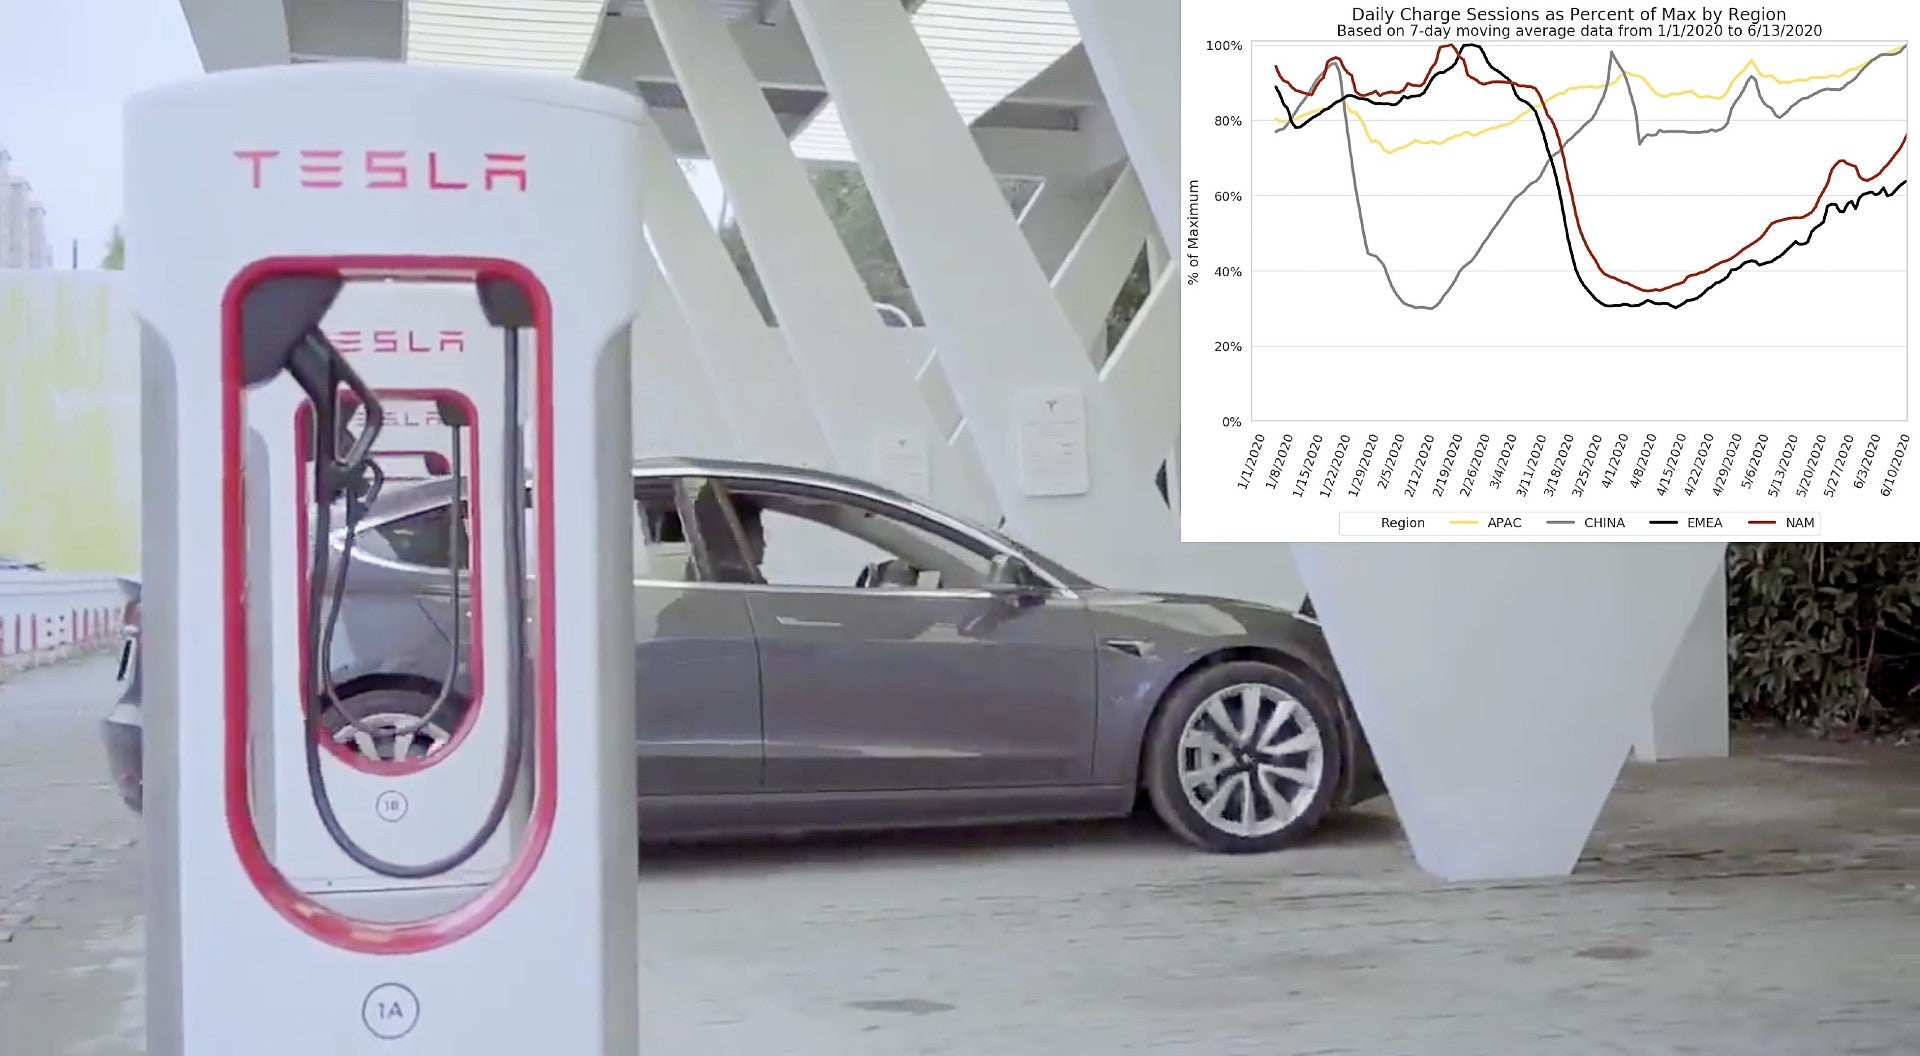 Tesla Supercharger Use Beats Pre-Pandemic Highs In China & Asia Pacific